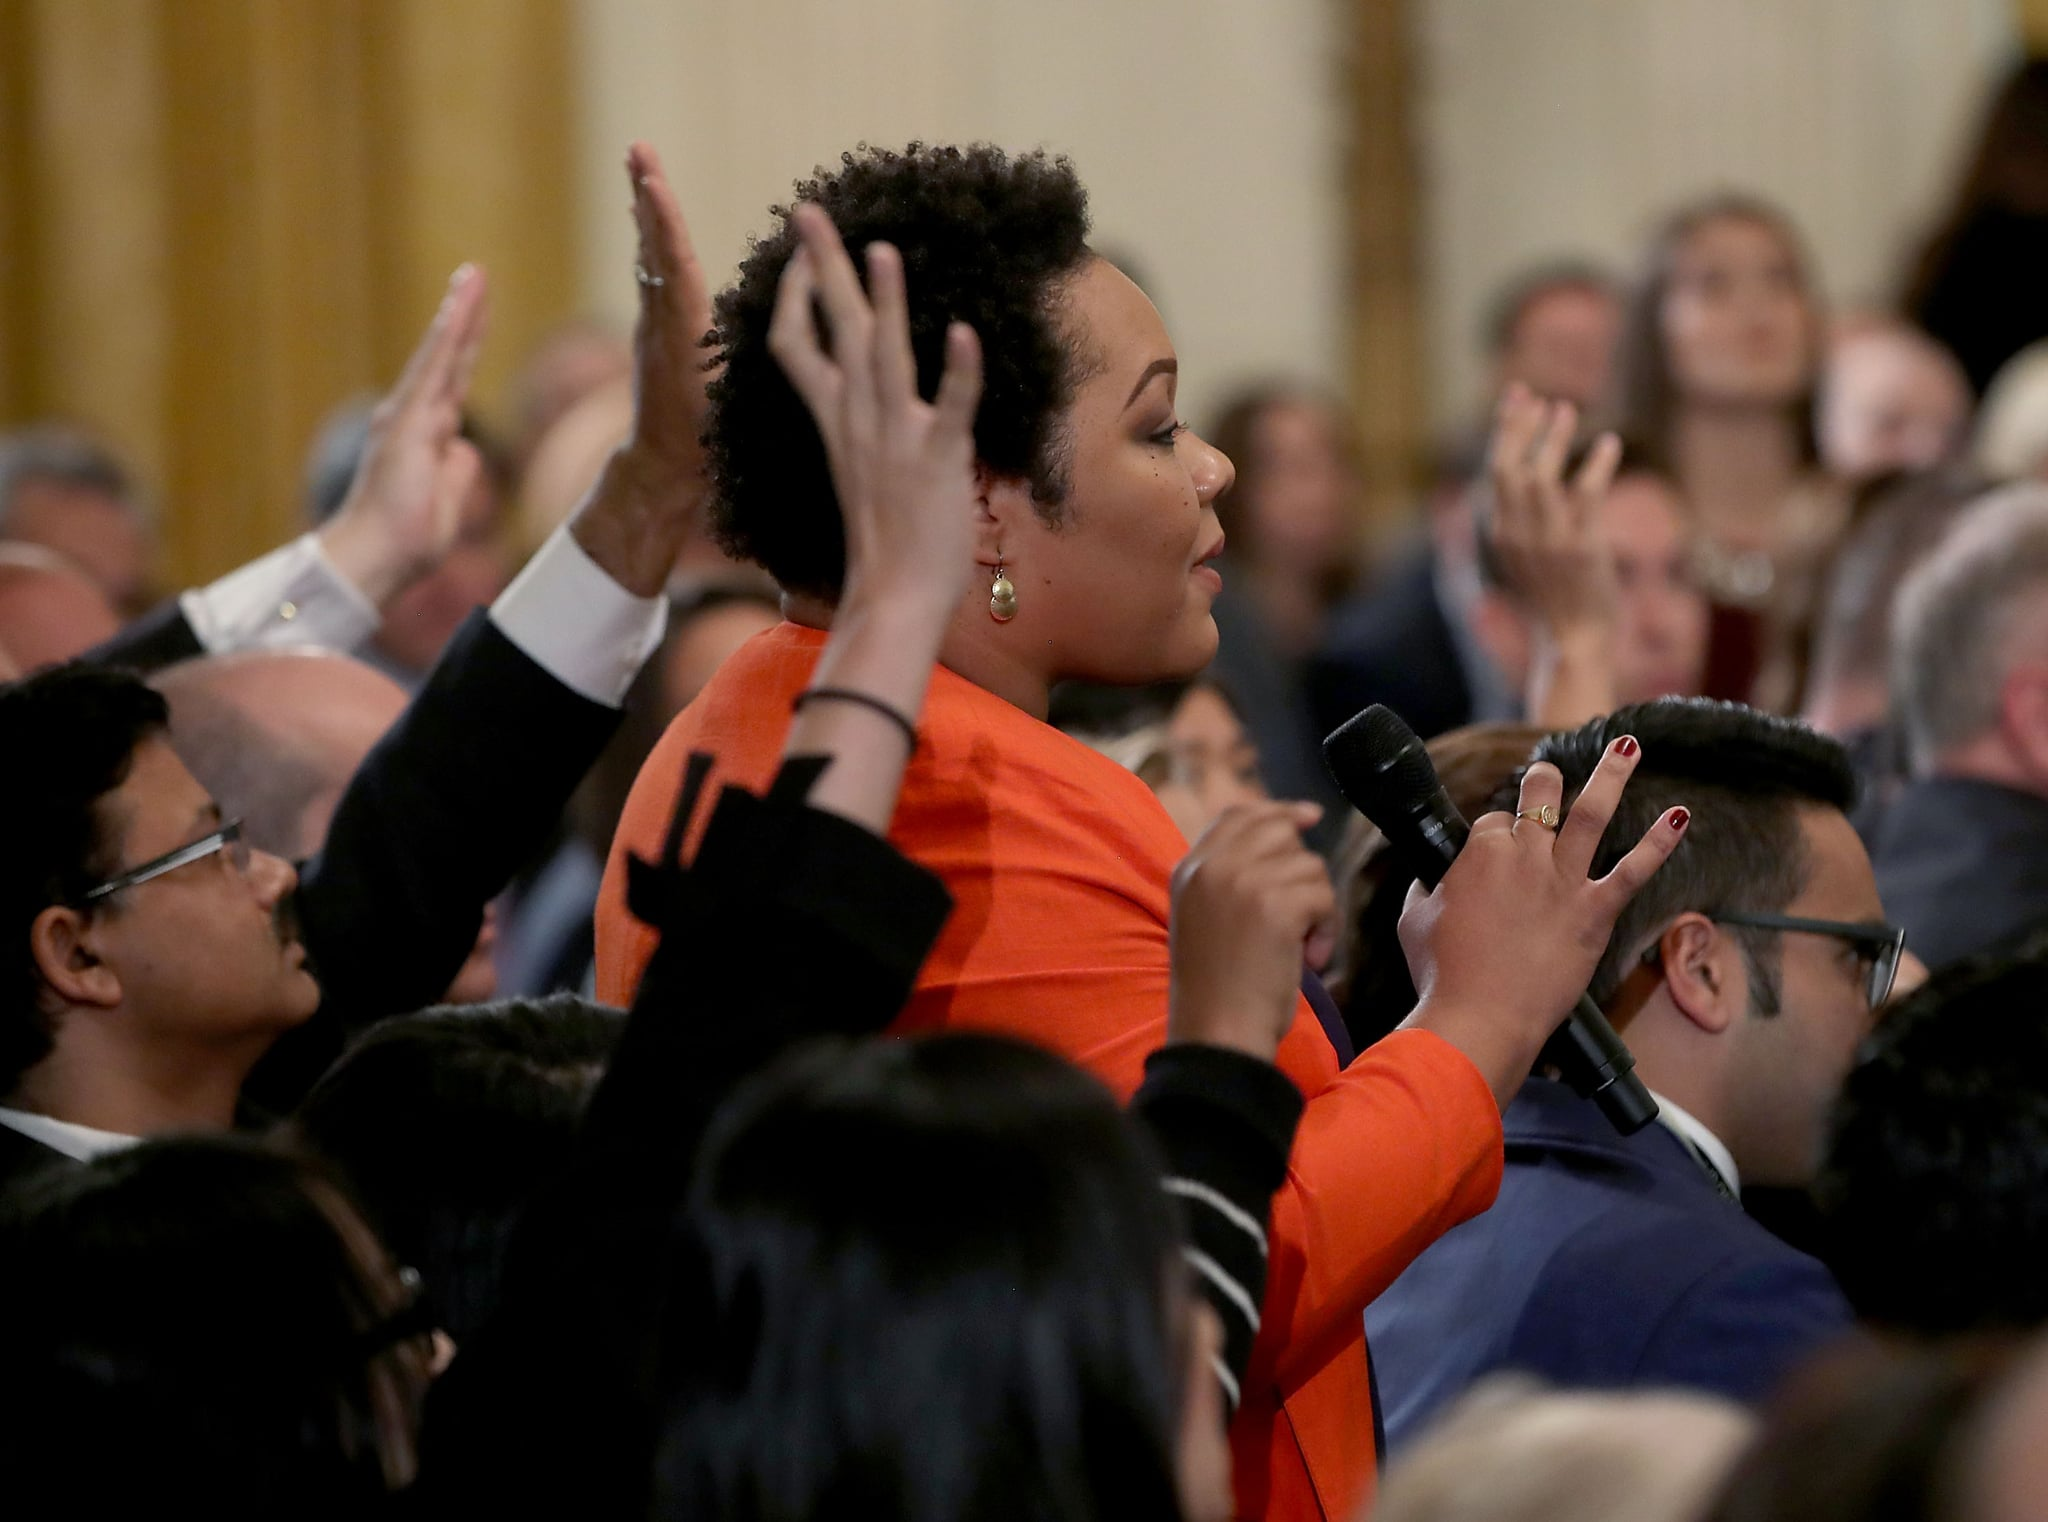 WASHINGTON, DC - NOVEMBER 07: Yamiche Alcindor of PBS NewsHour asks a question to U.S. President Donald Trump after remarks by the President a day after the midterm elections on November 7, 2018 in the East Room of the White House in Washington, DC. Republicans kept the Senate majority but lost control of the House to the Democrats. (Photo by Mark Wilson/Getty Images)